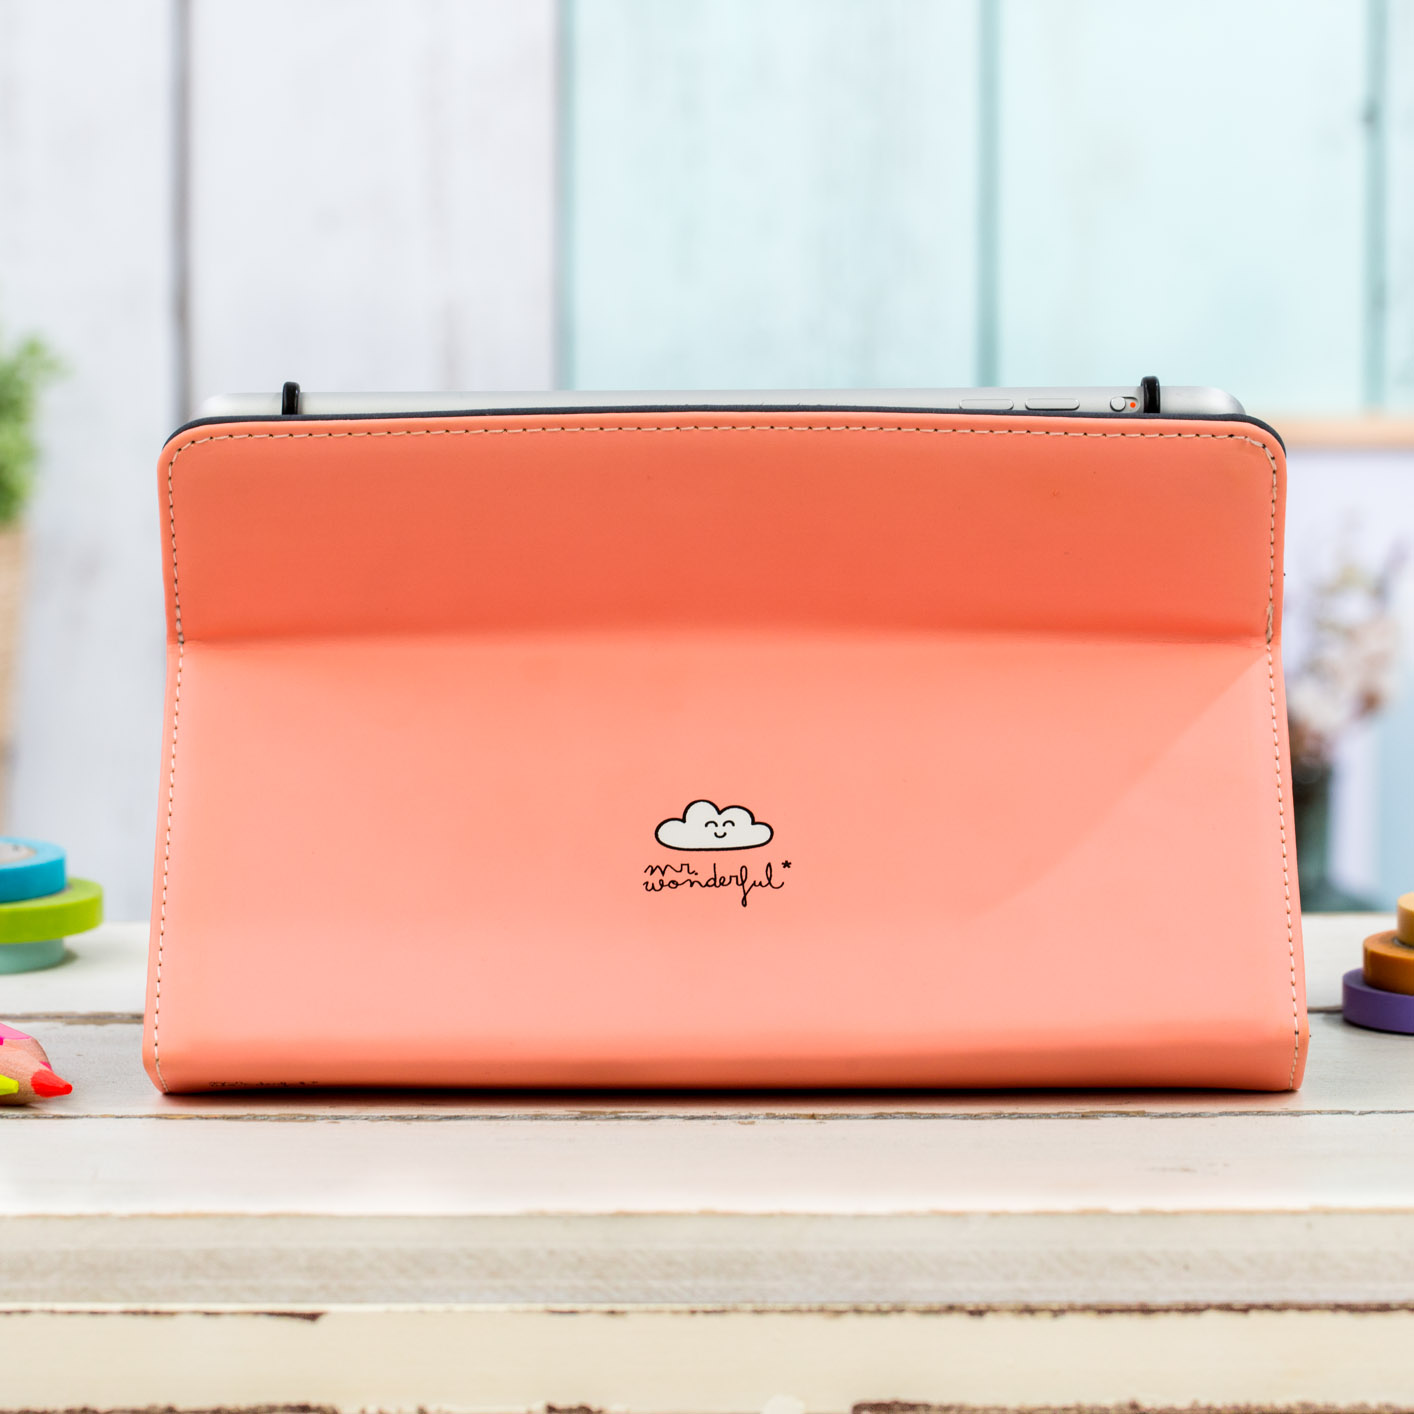 mrwonderful_MRUNI004_funda-salmon-tablet_7-7,9_no-hay-nada-imposible-34